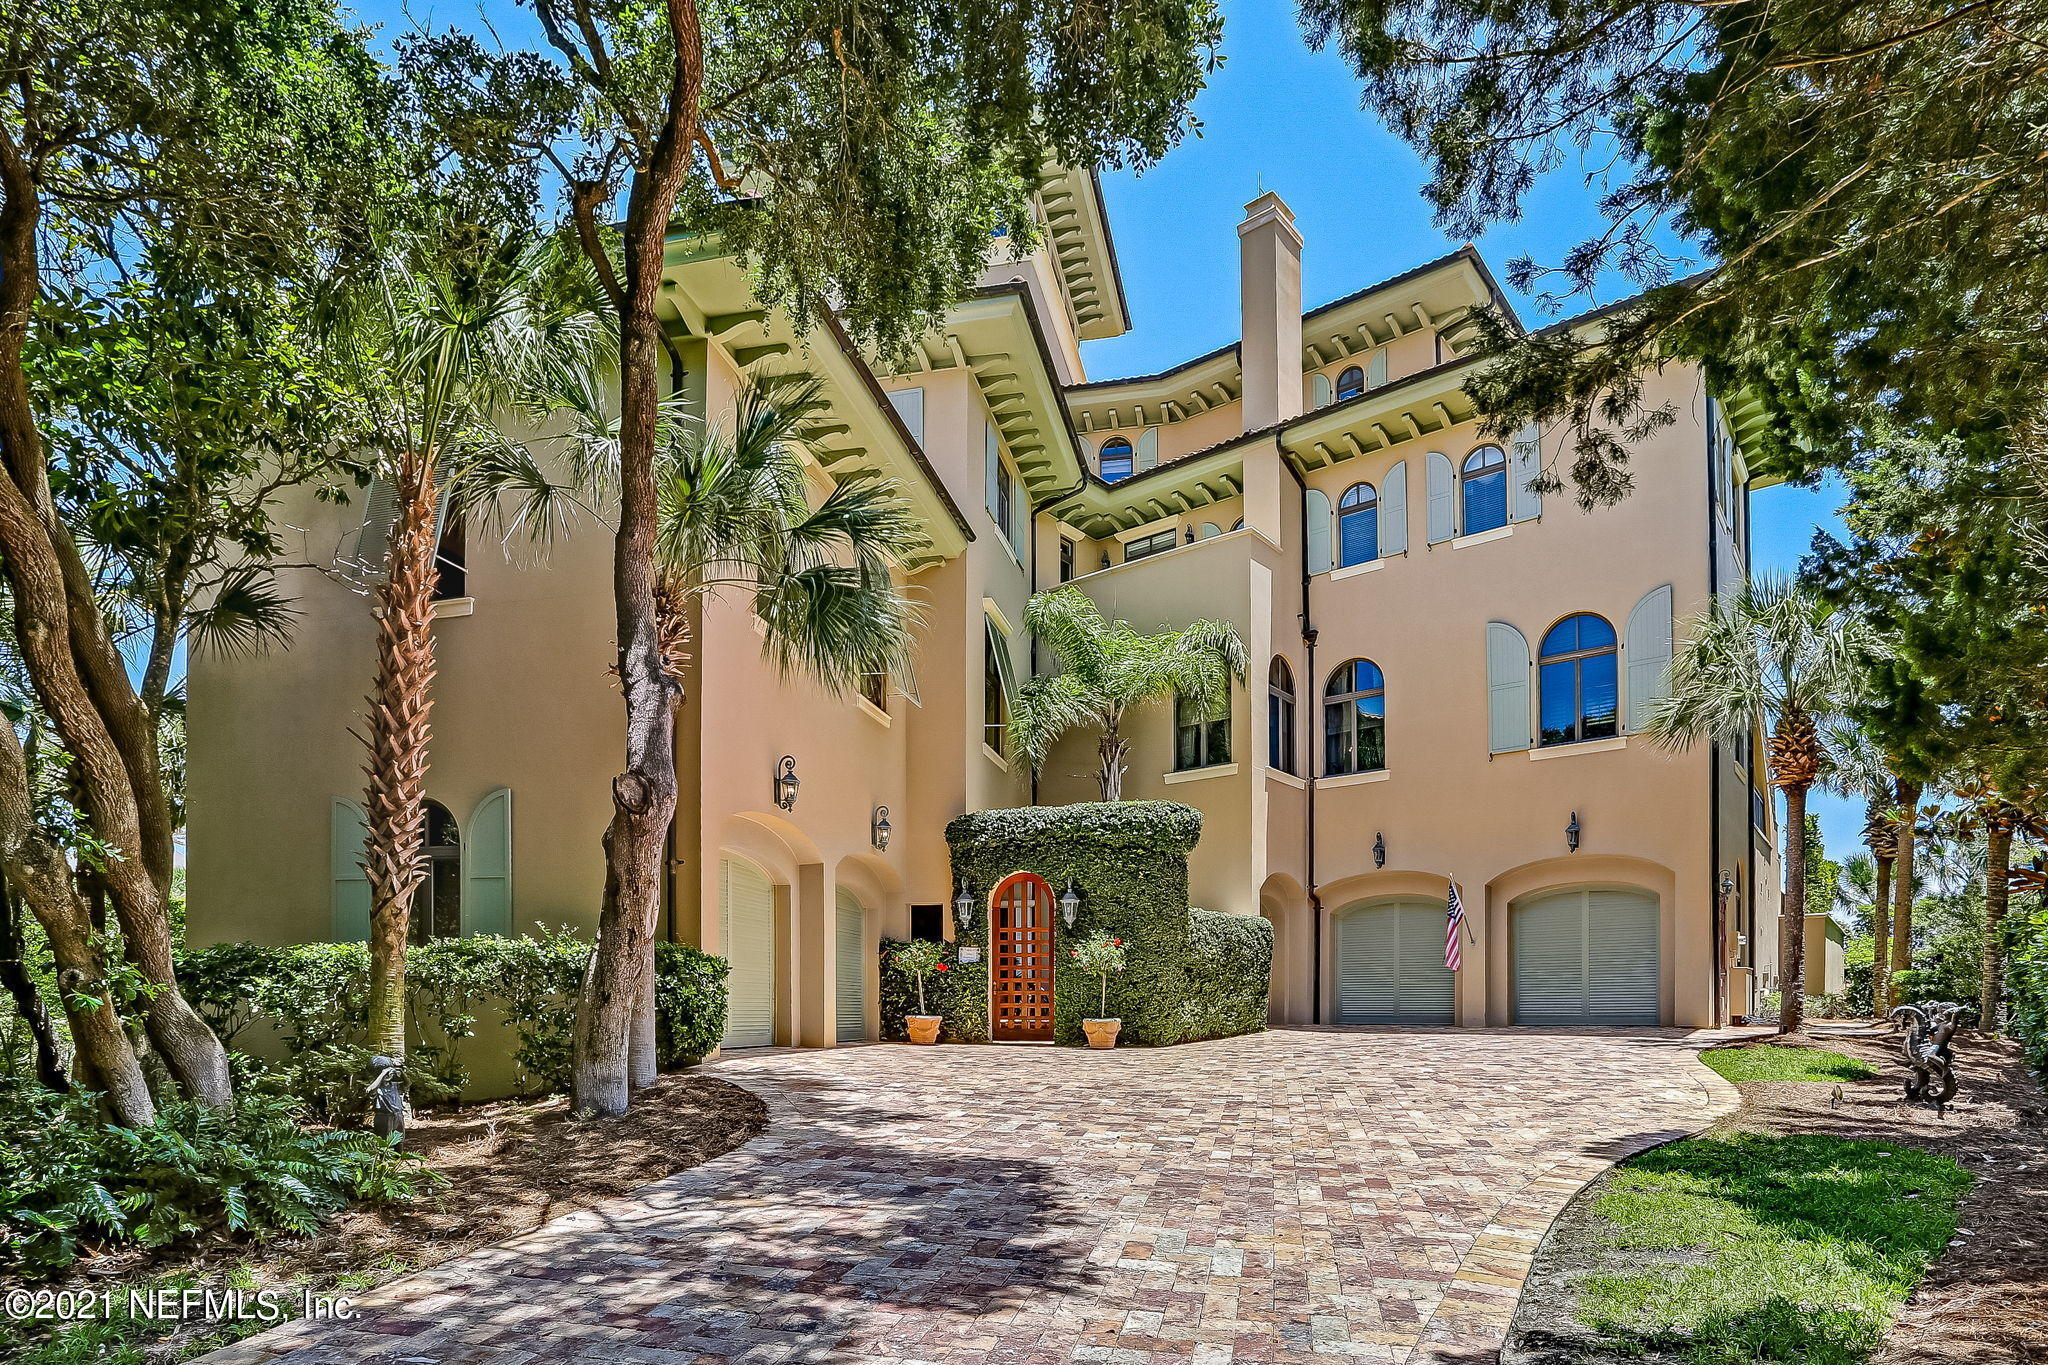 Reminiscent of an Italian villa, this is a modern take on Italy's most enviable architecture. Hand-crafted Walnut columns and beams open up to a great room with floor-to-ceiling windows and sweeping ocean views. This home is rich in details, from a soaring spiral staircase to a 5th-floor Crow's Nest with 360-degree views. Boasting 5 master suites, all with views of the ocean, and walk-in closets, families thrive here. A Tuscan-style kitchen invites the most esteemed chef with cutting-edge appliances, and a 4th-floor primary suite featuring hand-troweled Venetian plaster walls caters to the owners with breathtaking morning views. Outdoor oceanfront terraces, accessible from each floor, overlook a double infinity pool. From the exterior, a travertine driveway leads to 4 oversized garages. Just steps away within the Ocean Club Drive community, the Amelia Island Club's Ocean Clubhouse provides an amenity package that is sure to please.